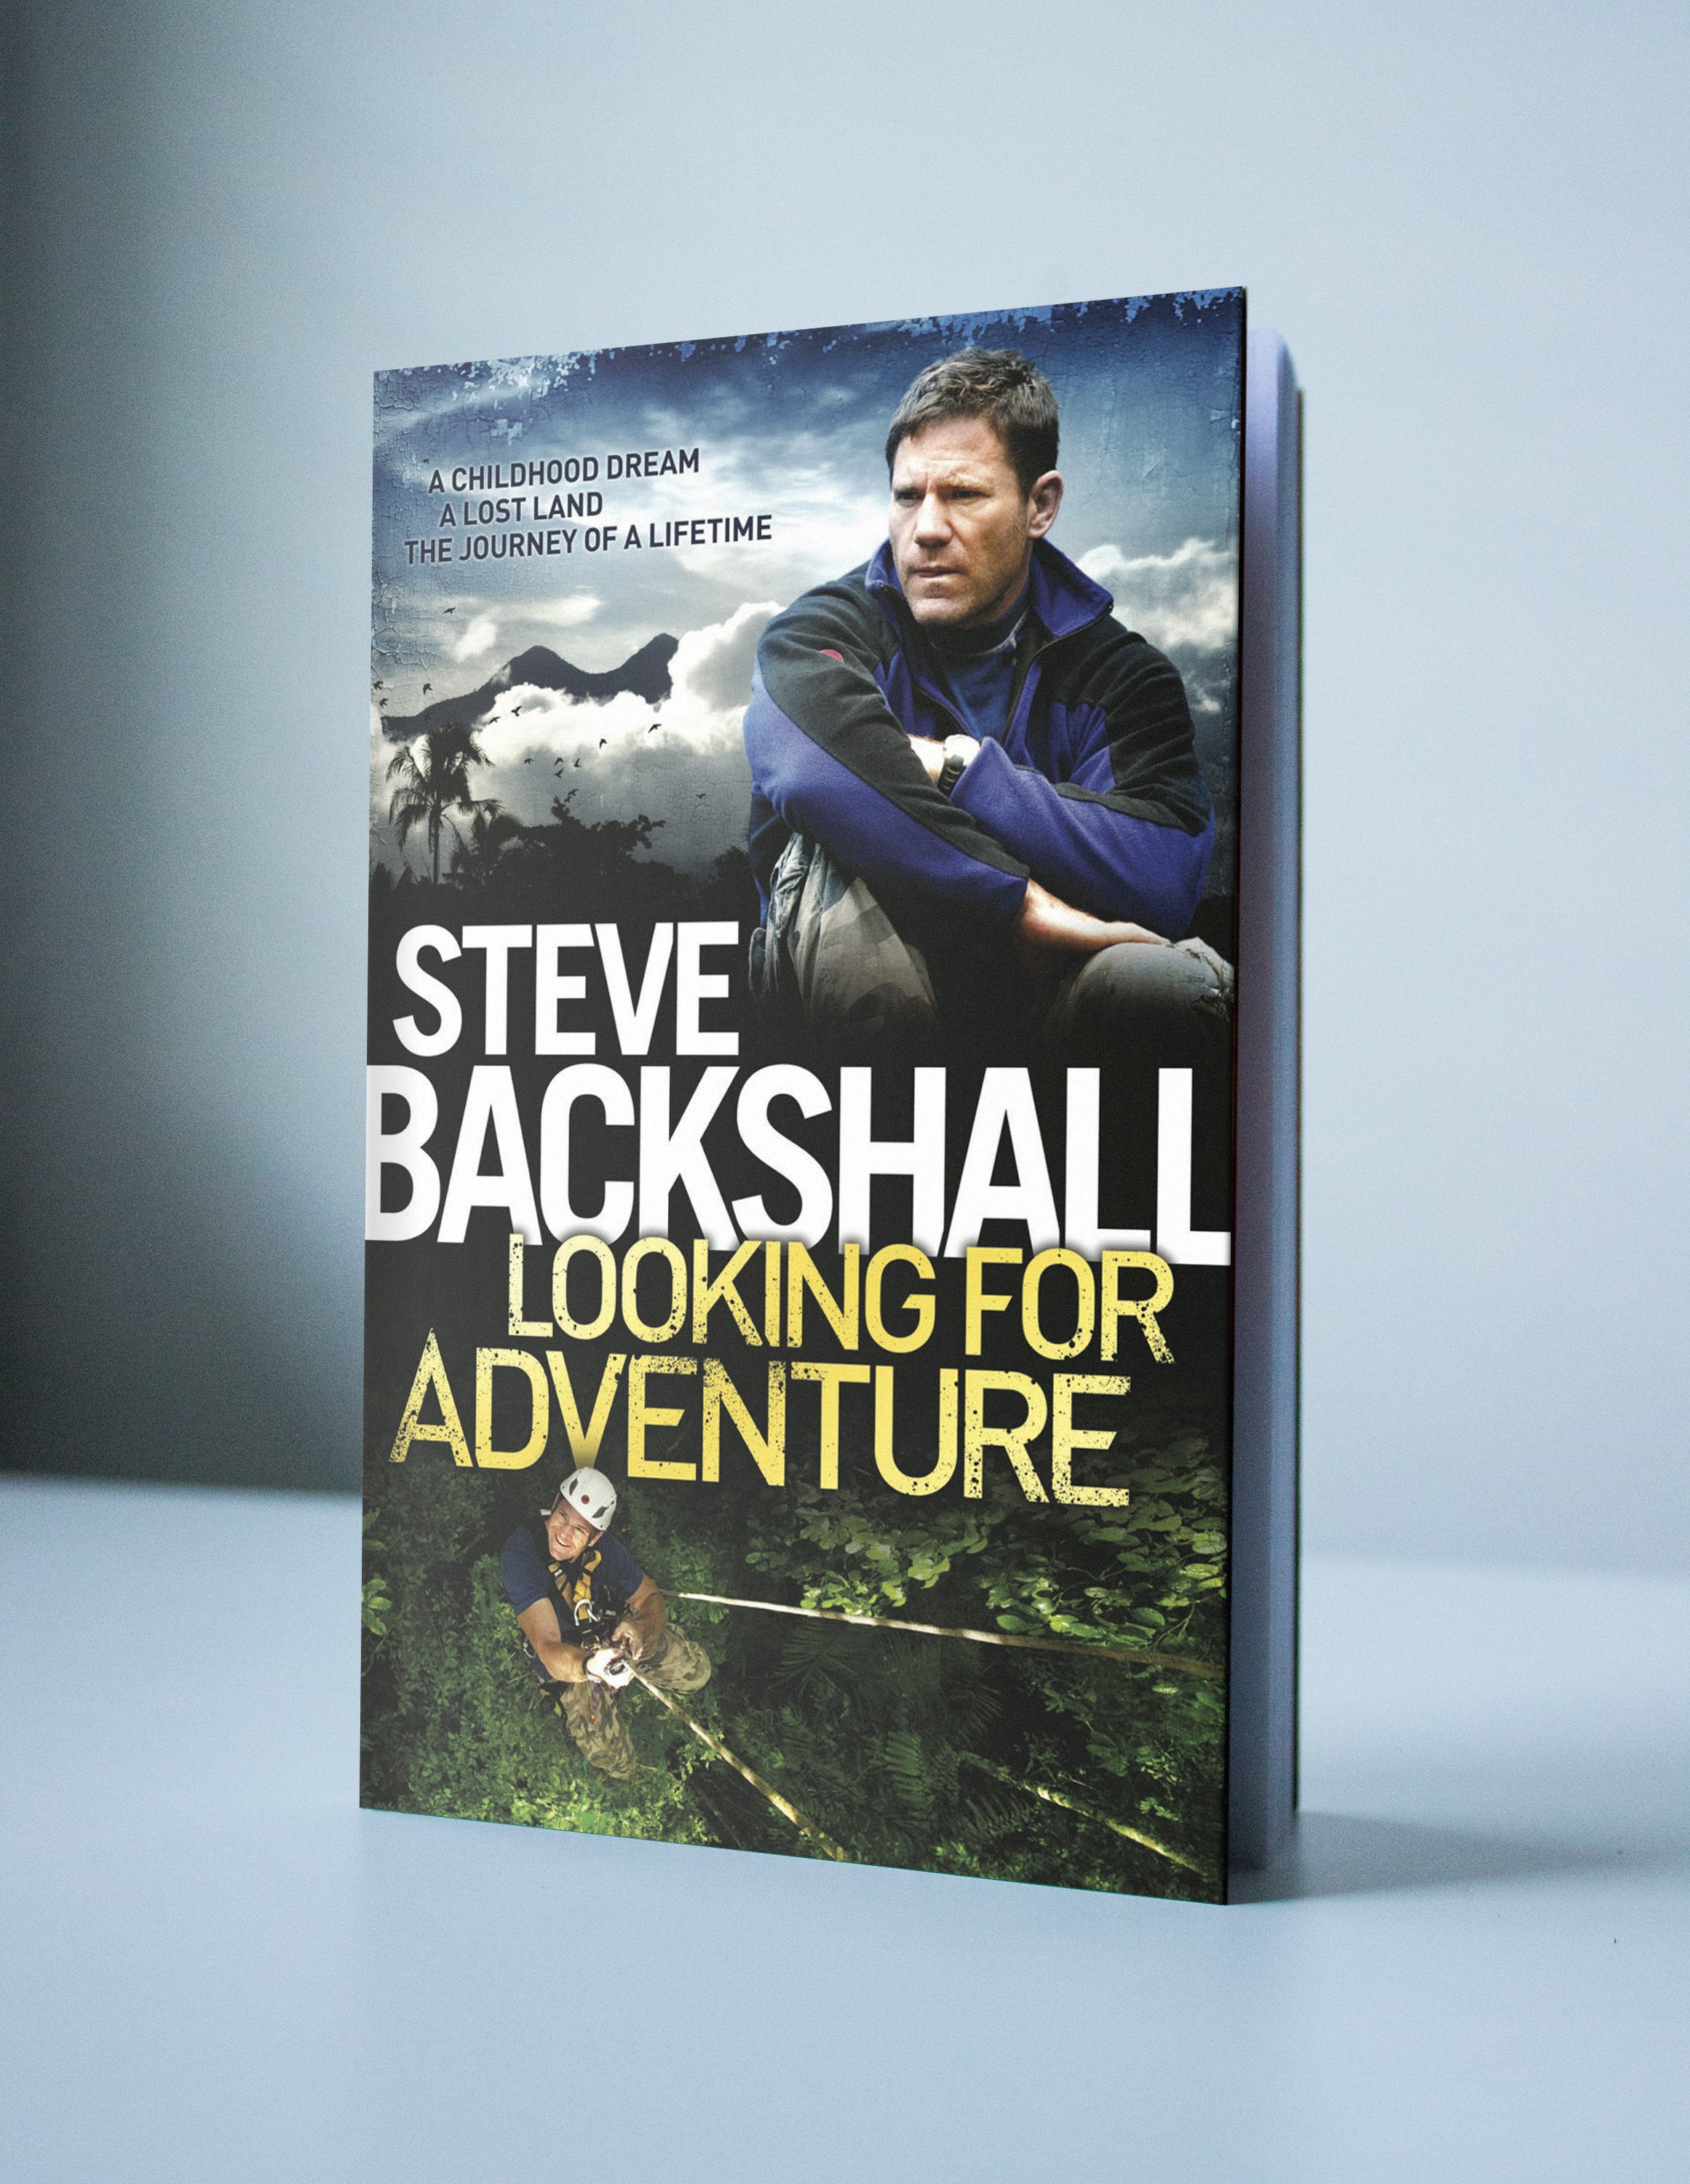 Steve Backshall Looking For Adventure